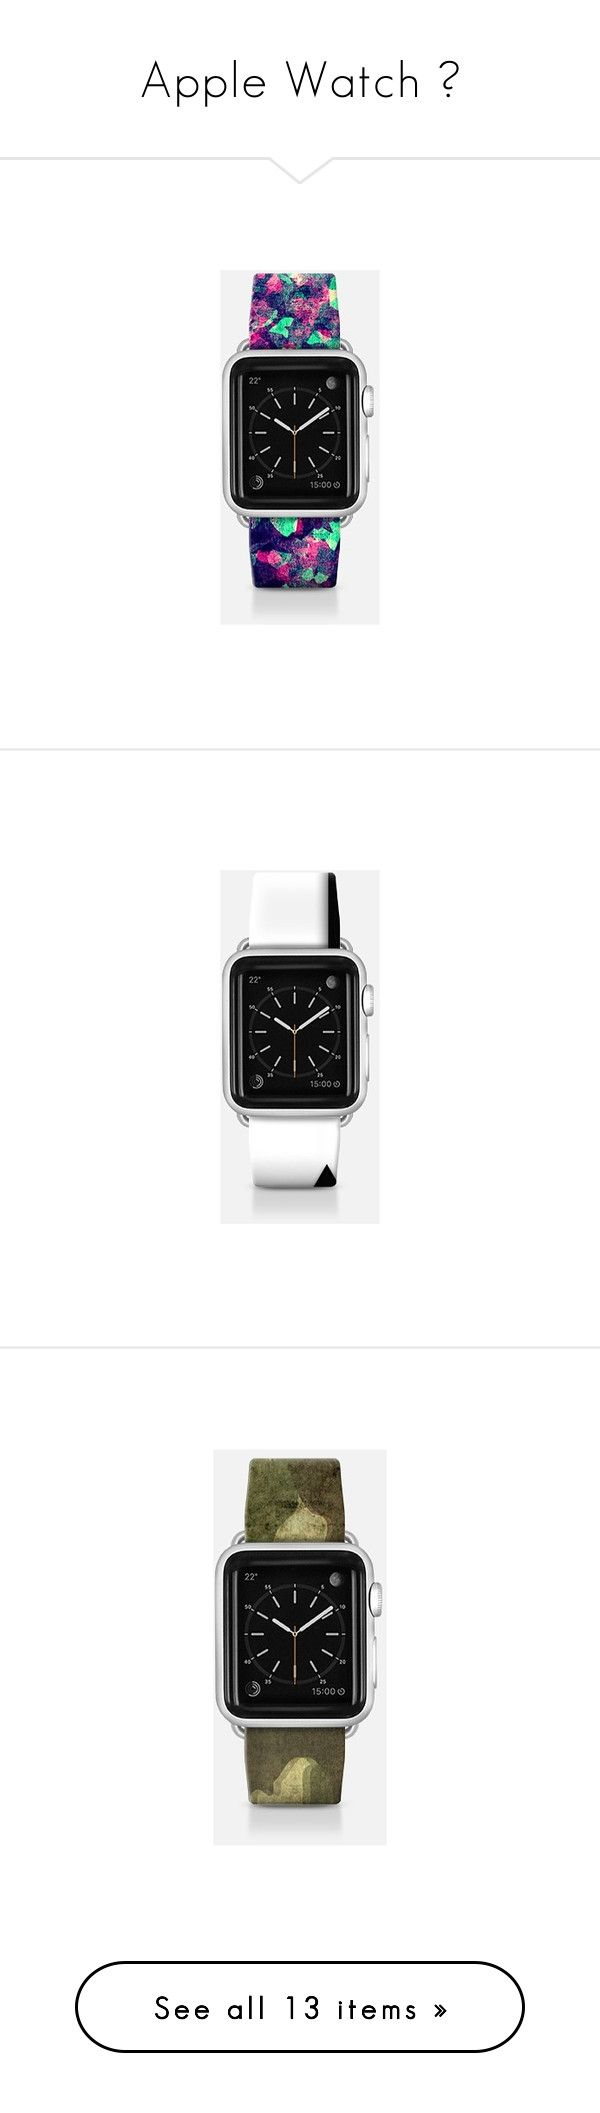 """Apple Watch ⌚"" by aniahrhichkhidd ❤ liked on Polyvore featuring jewelry, watches, apple watch band, teal watches, pink camo jewelry, camo watches, grunge jewelry, camouflage jewelry, urban watches and urban jewelry"